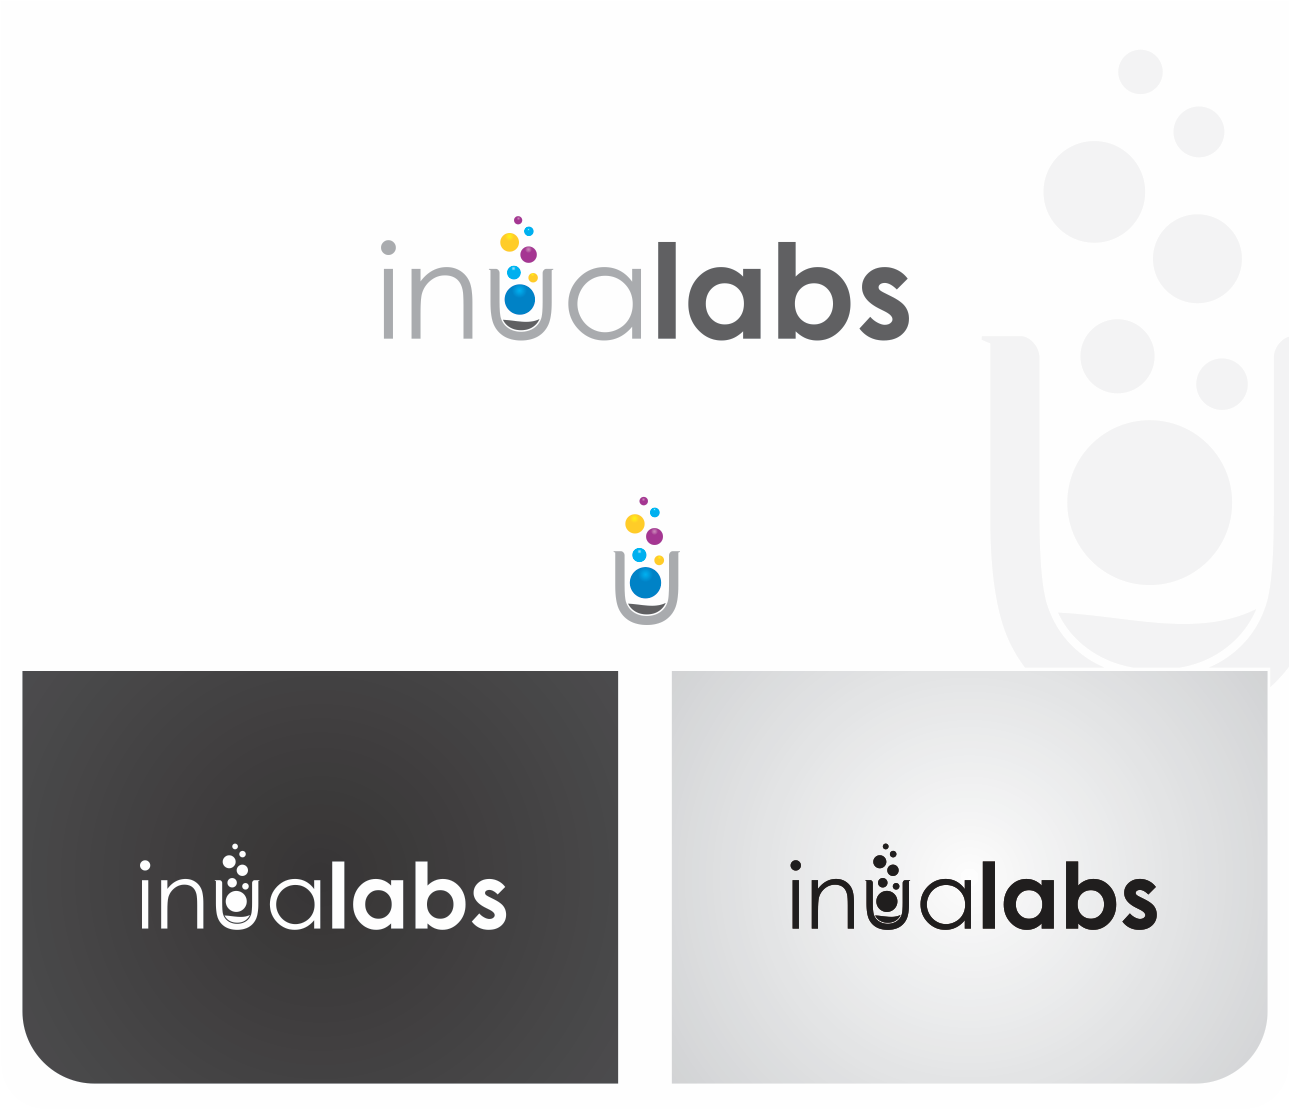 Help Inua Labs with a new logo